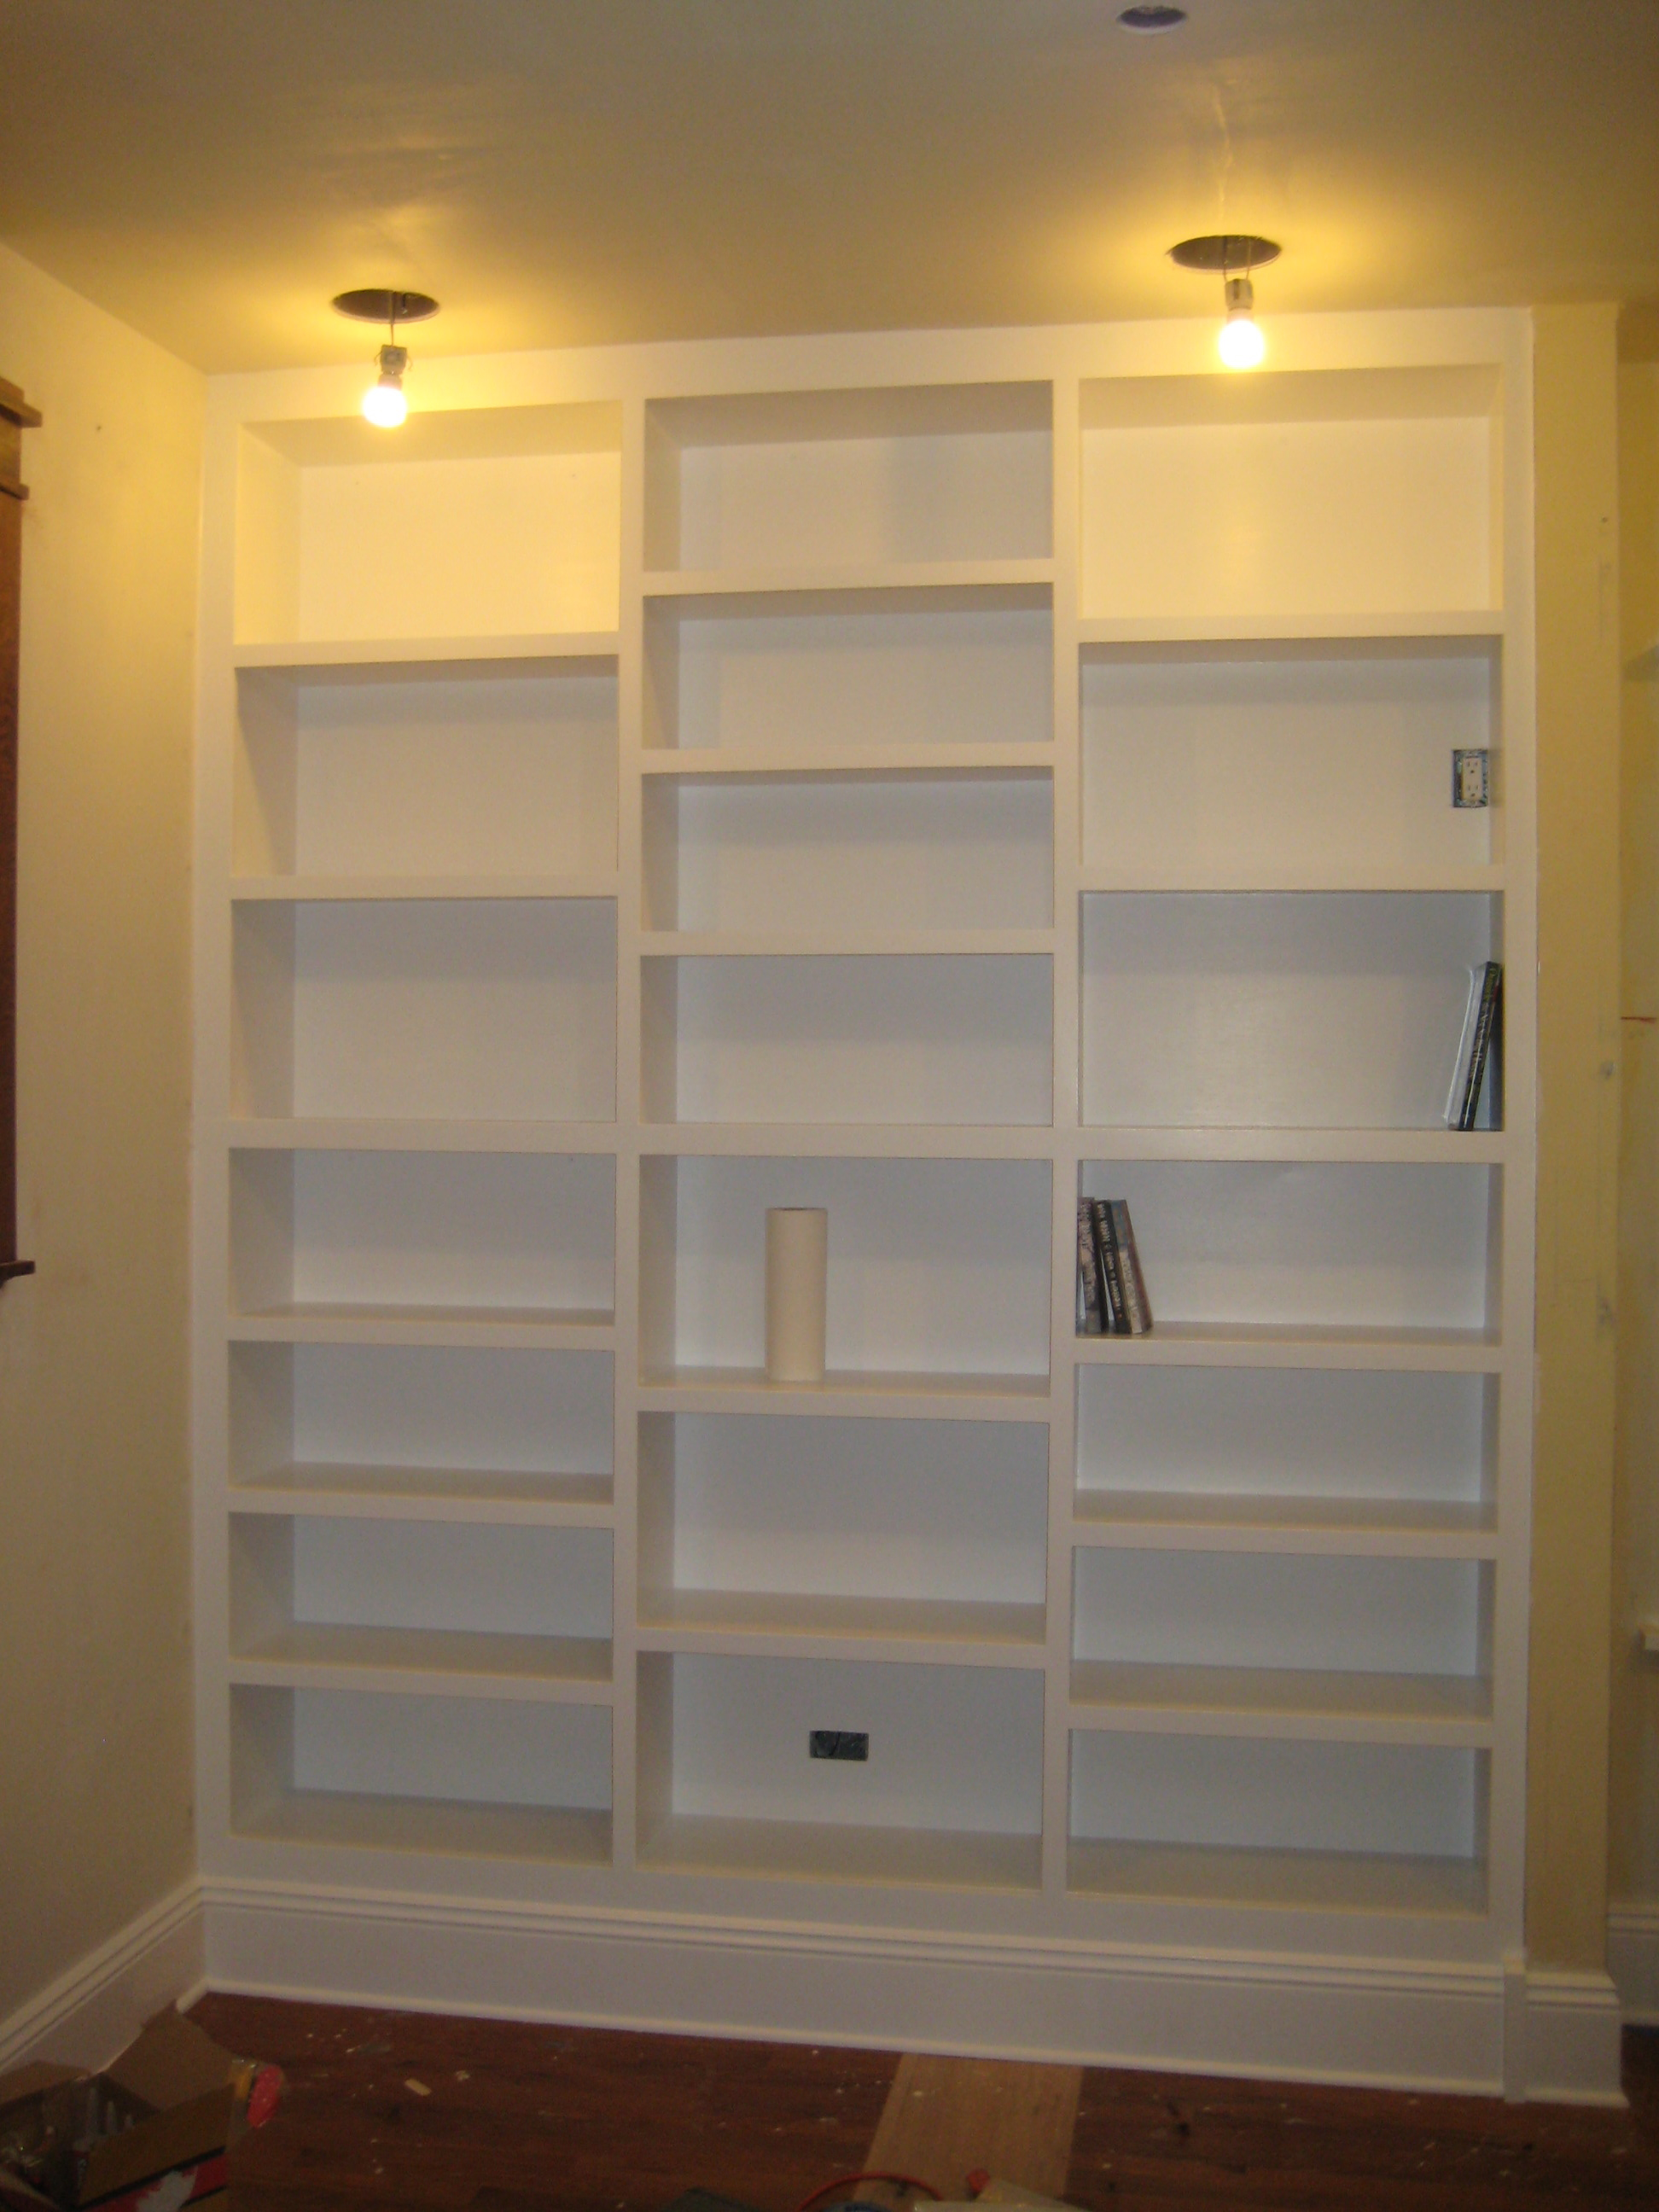 amazing diy build built in bookcase plans pdf download sliding bookshelf  with plans for bookshelves